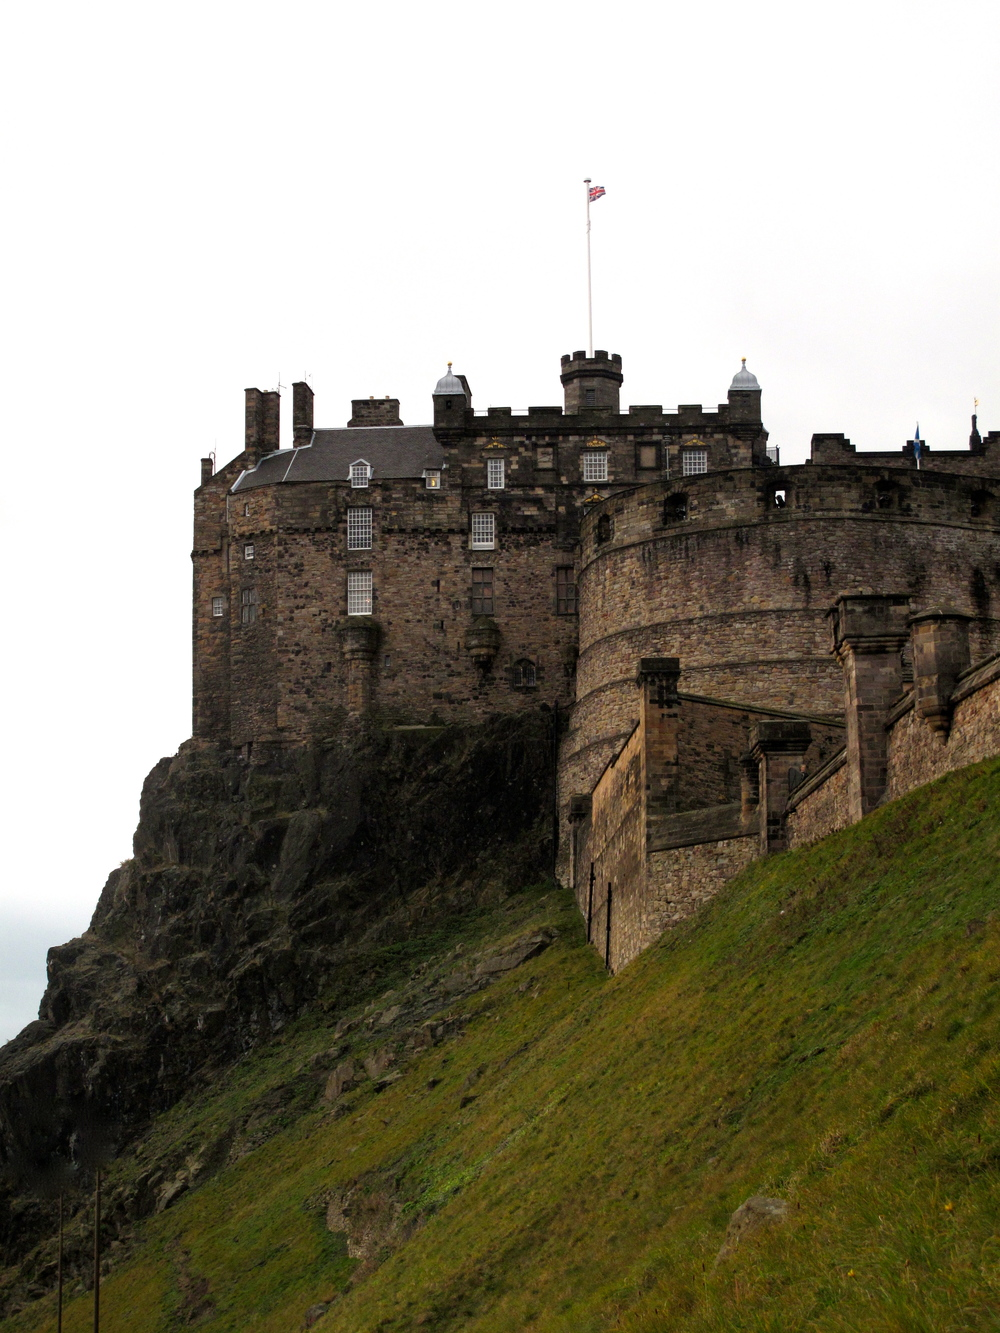 Edinburgh Castle, on a green hill top.